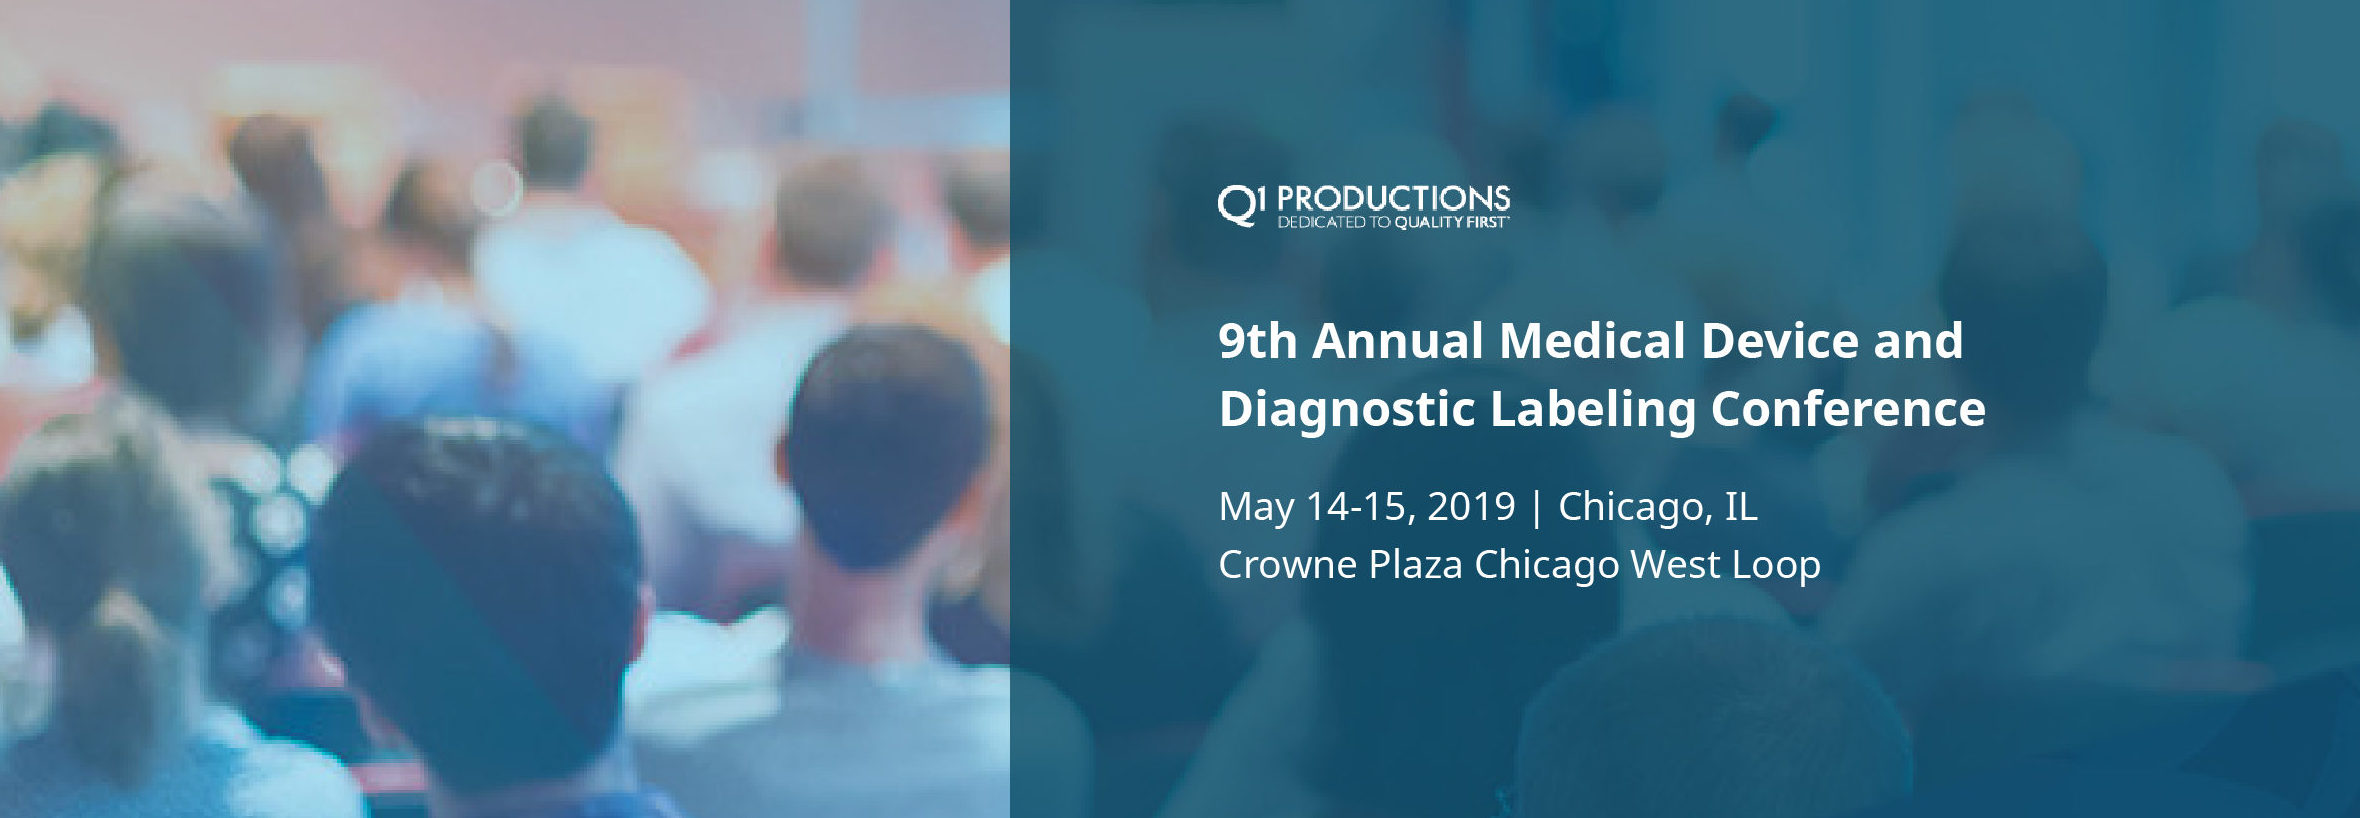 NLG at 9th Annual Medical Device and Diagnostics Labeling Conference